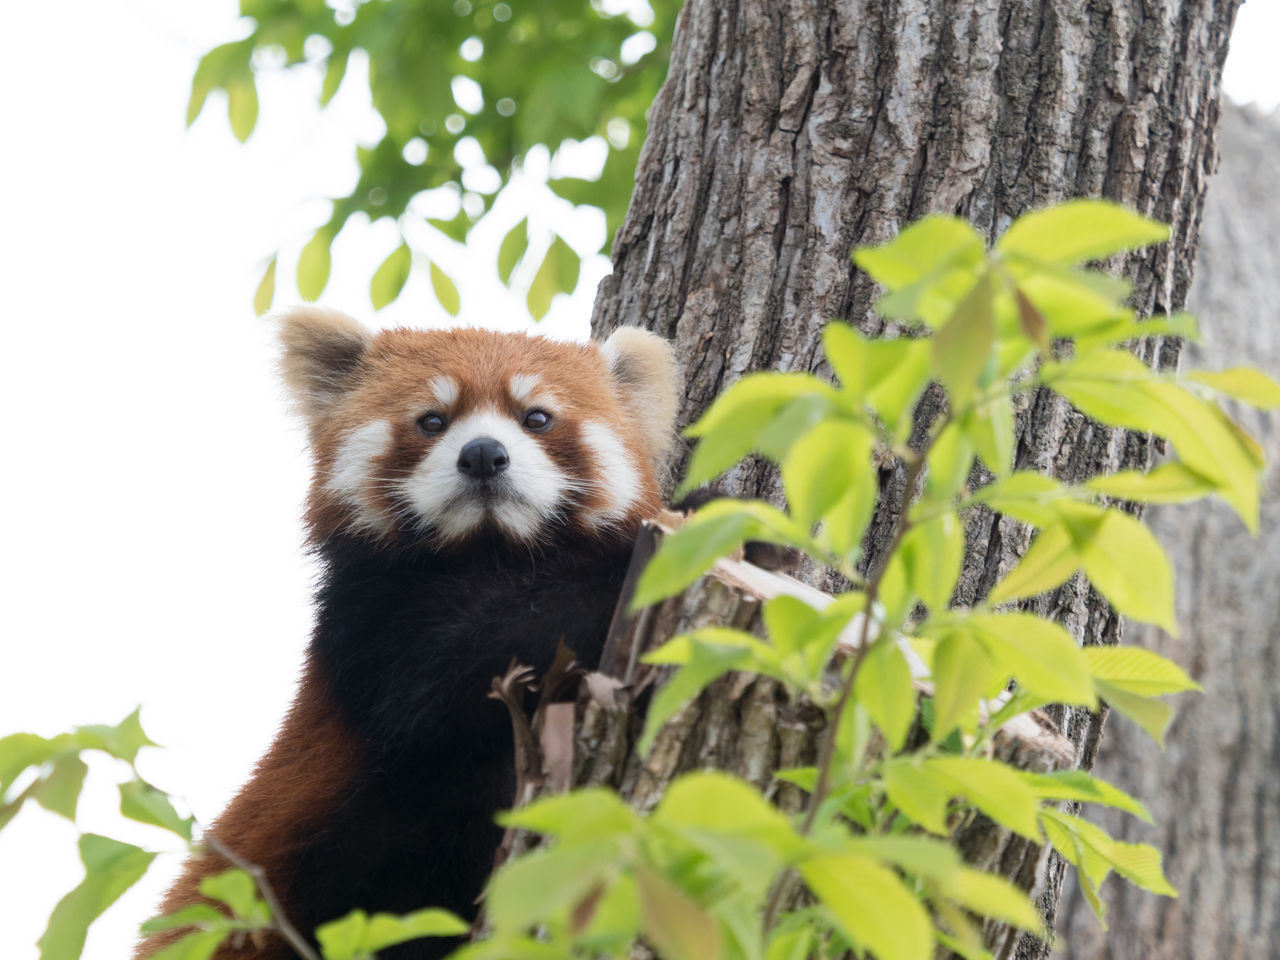 Ailurus Fulgens Animal Themes Animal Wildlife Animals In The Wild Branch Close-up Day Growth Leaf Lesser Panda Looking At Camera Mammal Nature No People One Animal Outdoors Panda - Animal Plant Portrait Red Panda Tree Tree Trunk Zoo